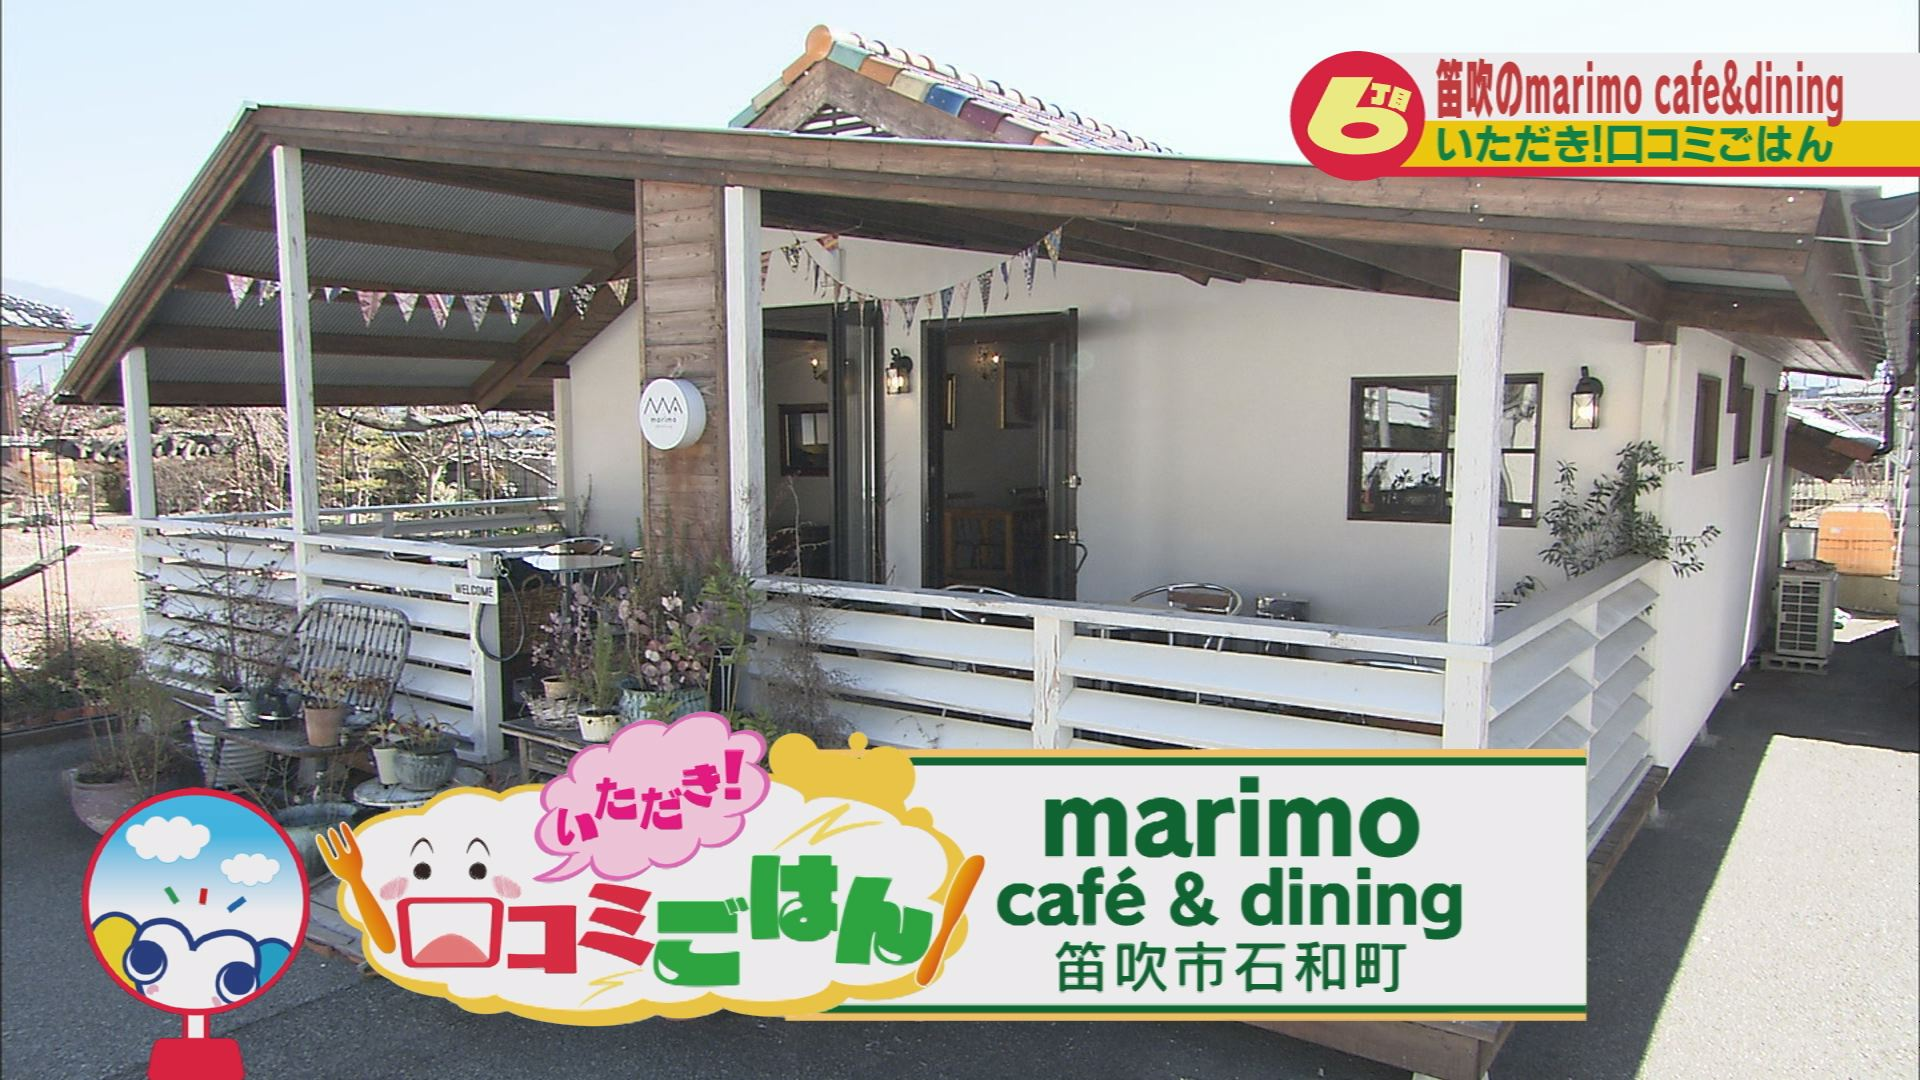 marimo cafe$dining(笛吹市石和町)